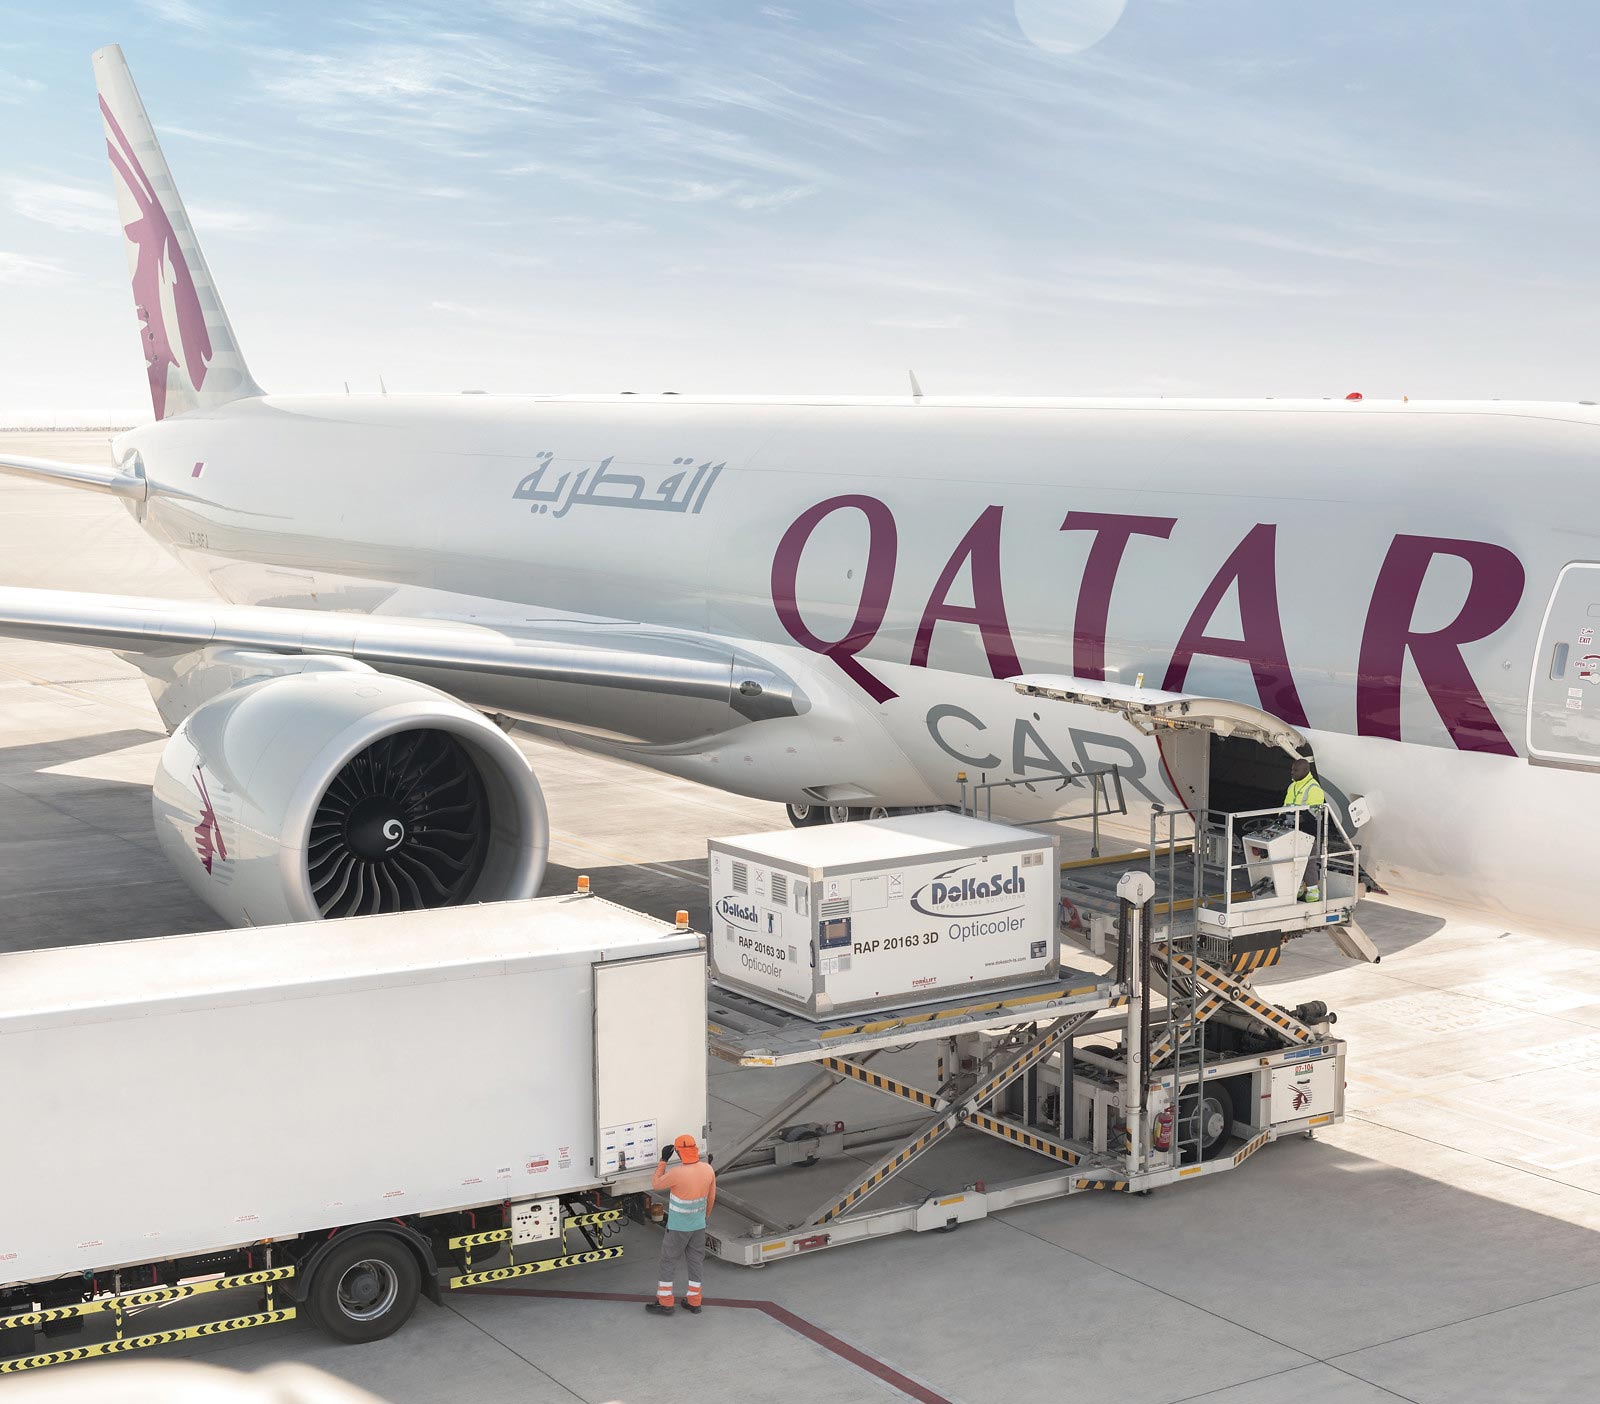 Qatar Airways transports medical aid and supplies to impacted regions around the globe.